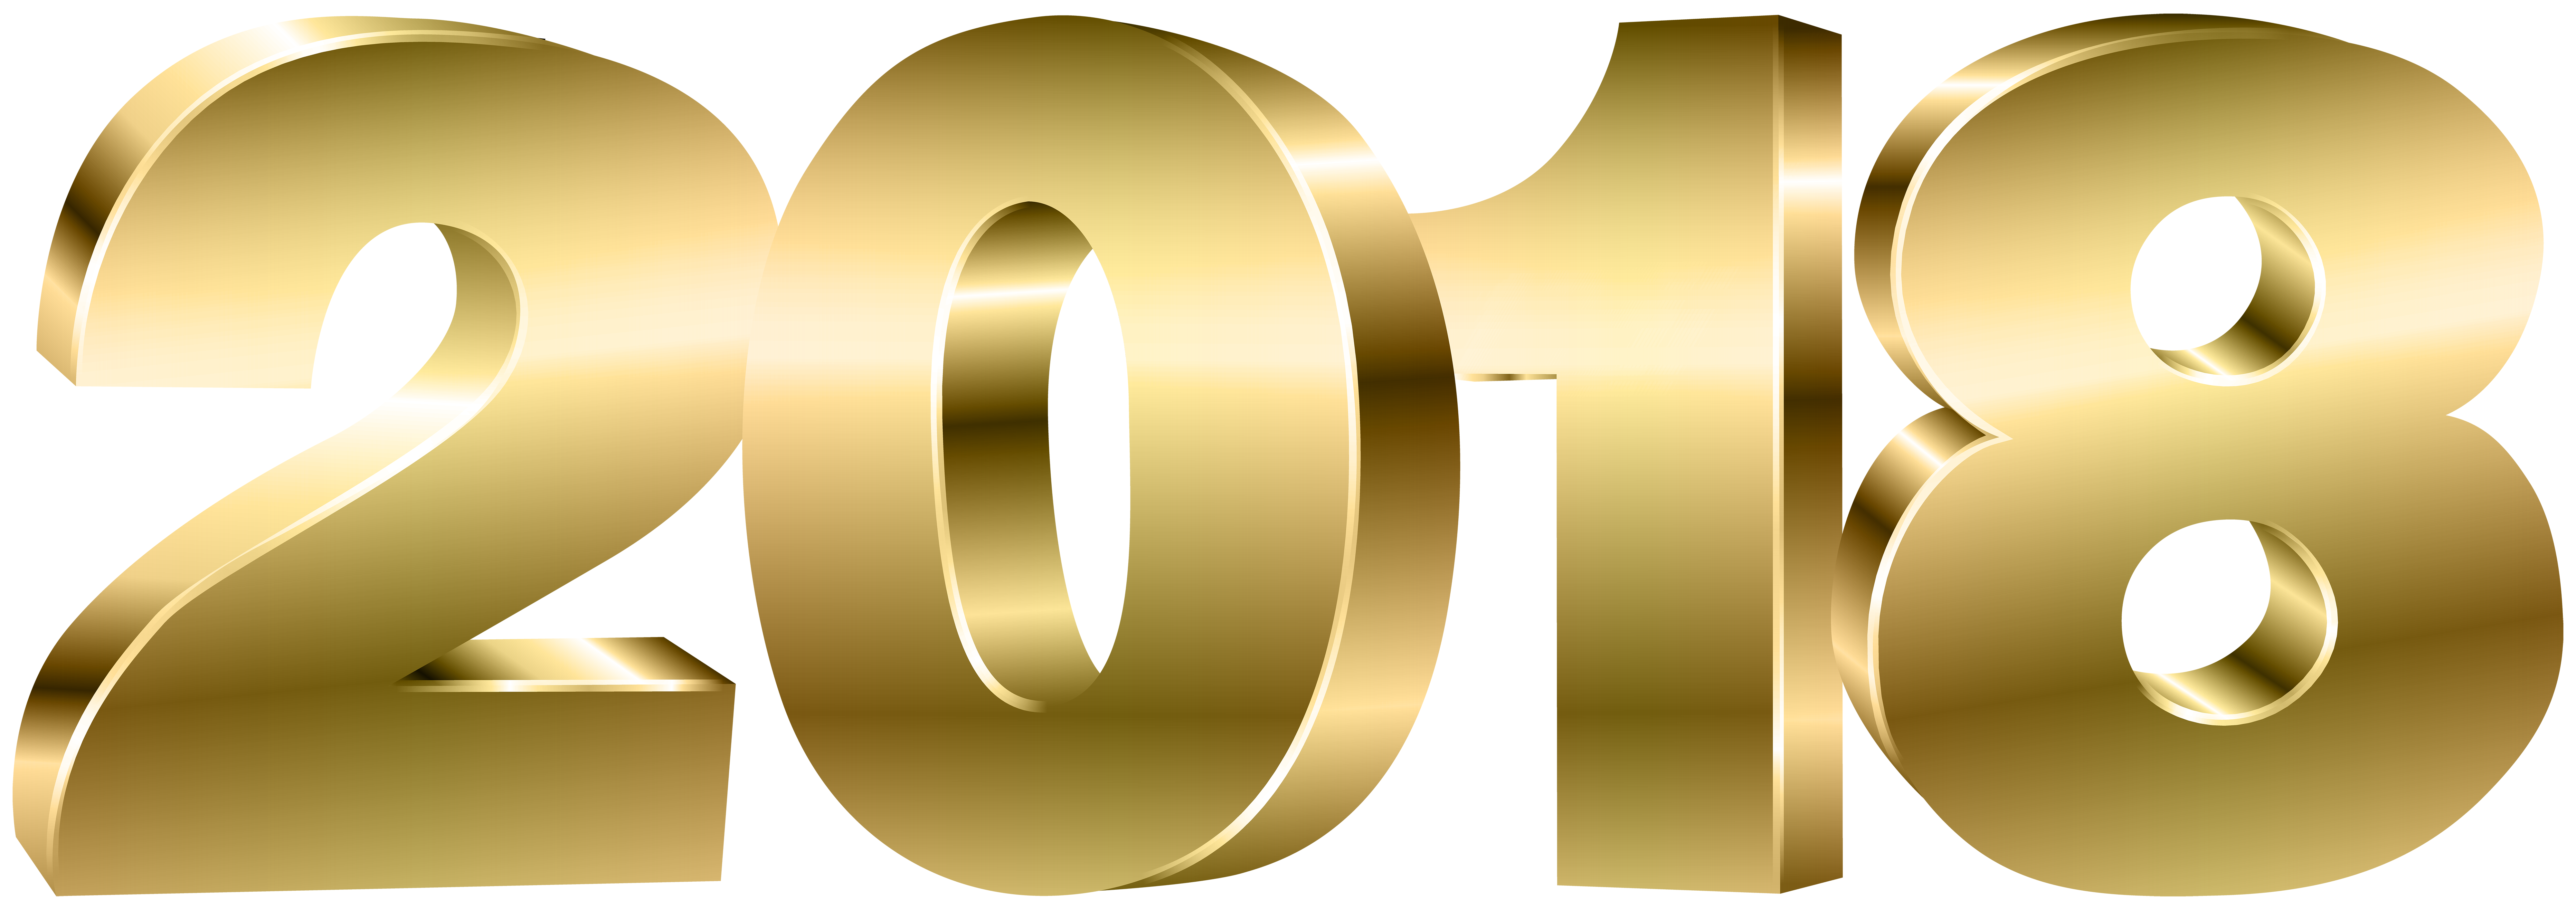 svg transparent library  gold png image. 2018 clipart.